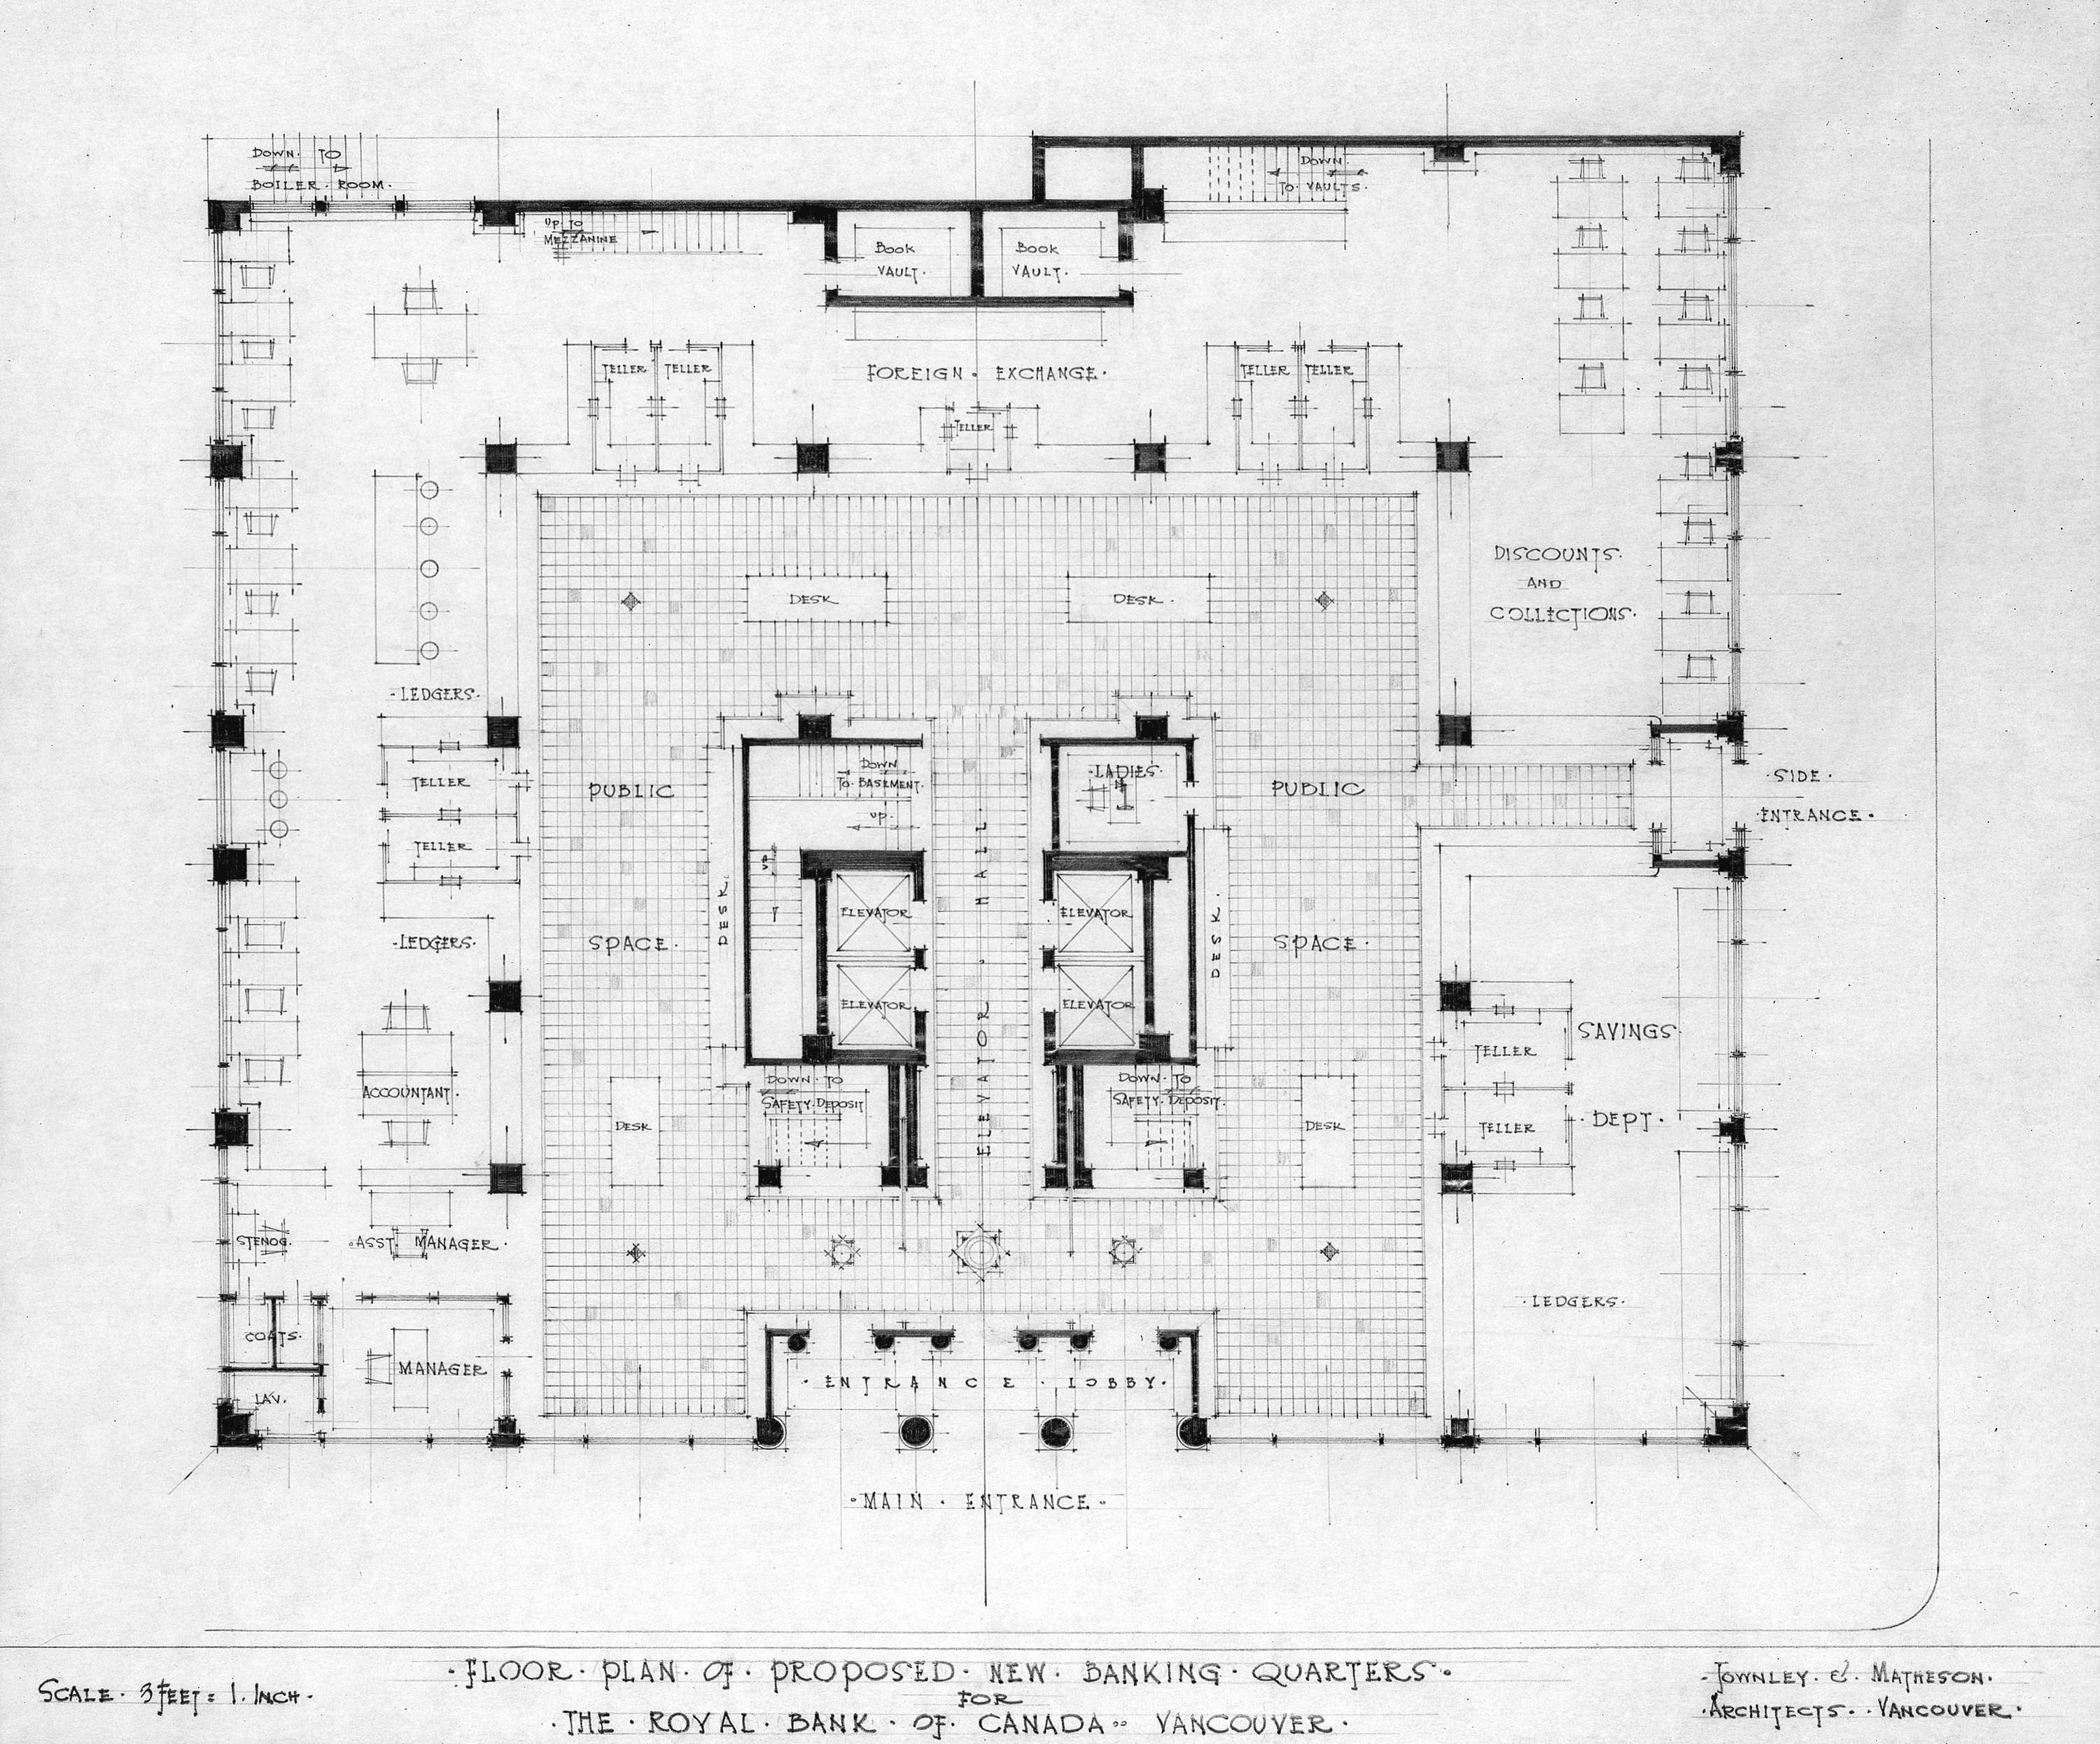 Floor plan of proposed new banking quarters for the Royal Bank of ...